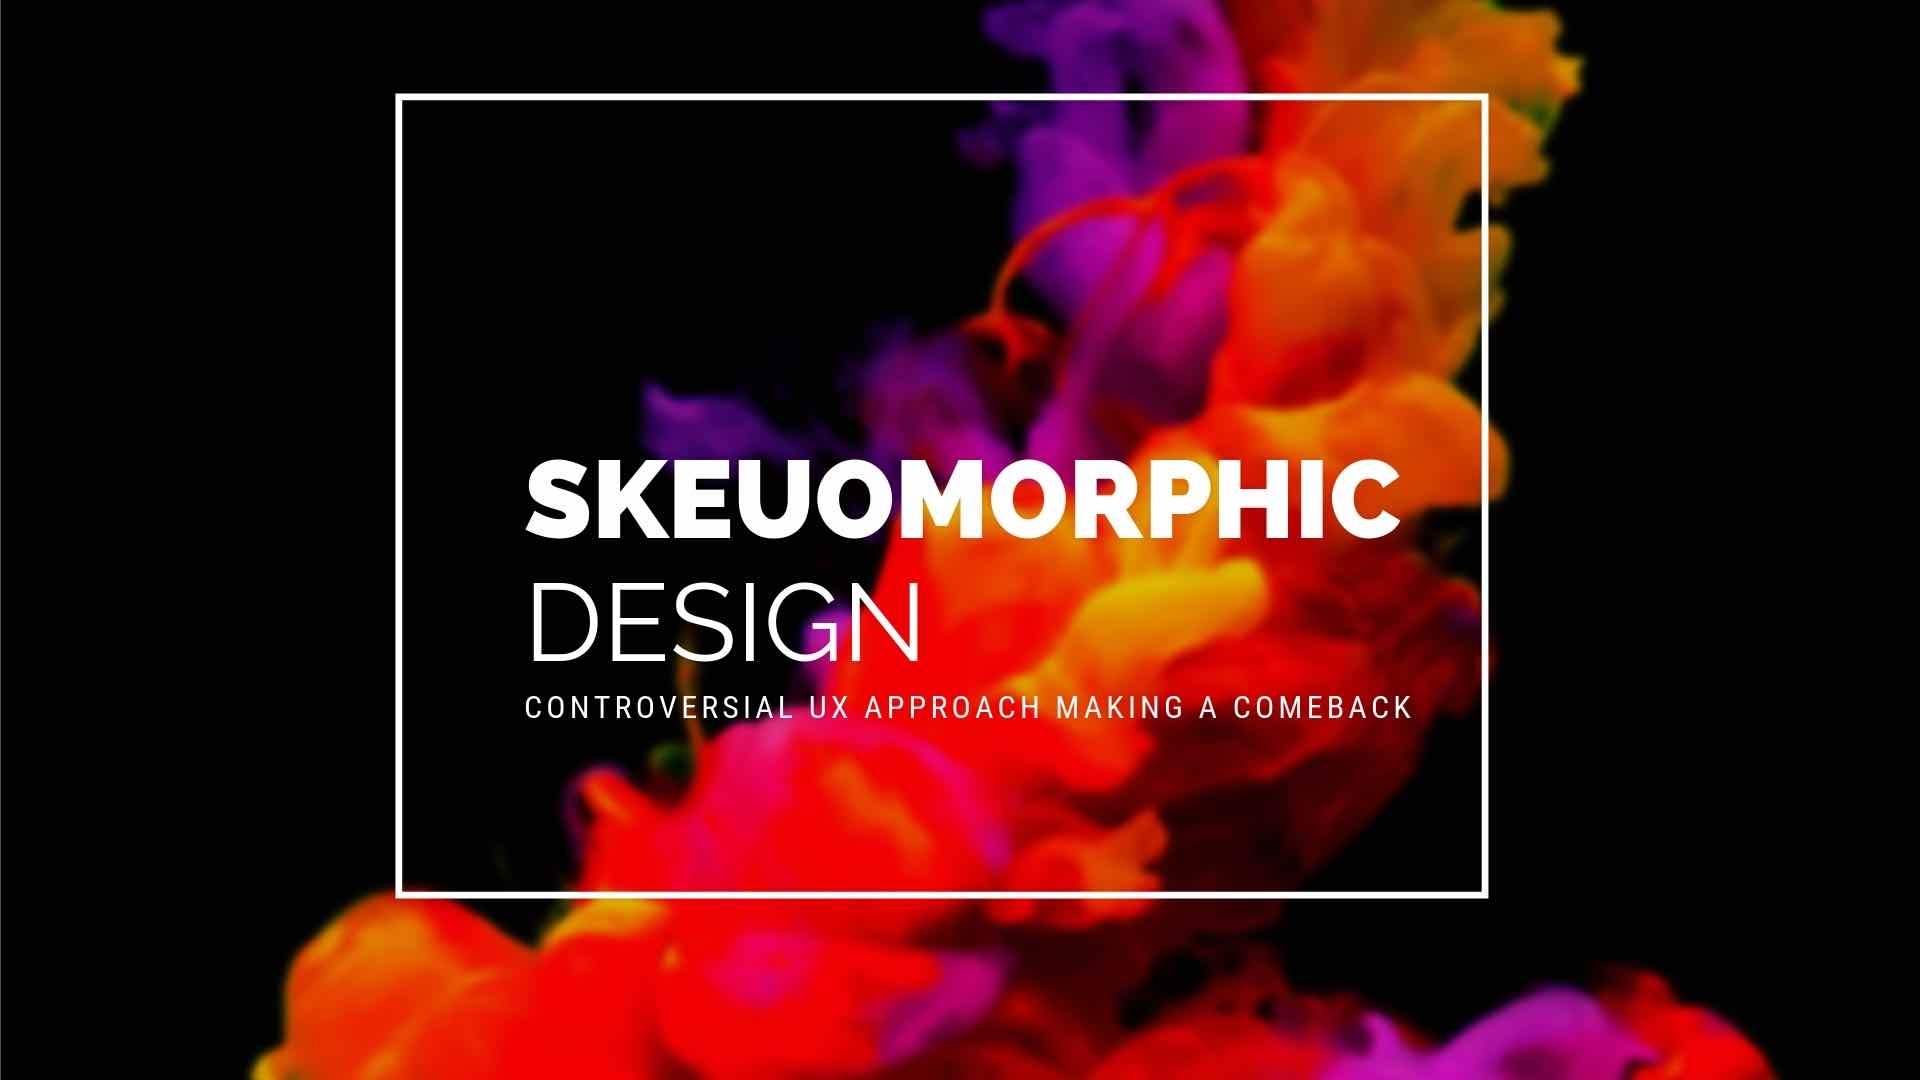 Skeuomorphic Design: A Controversial UX Approach Making a Comeback